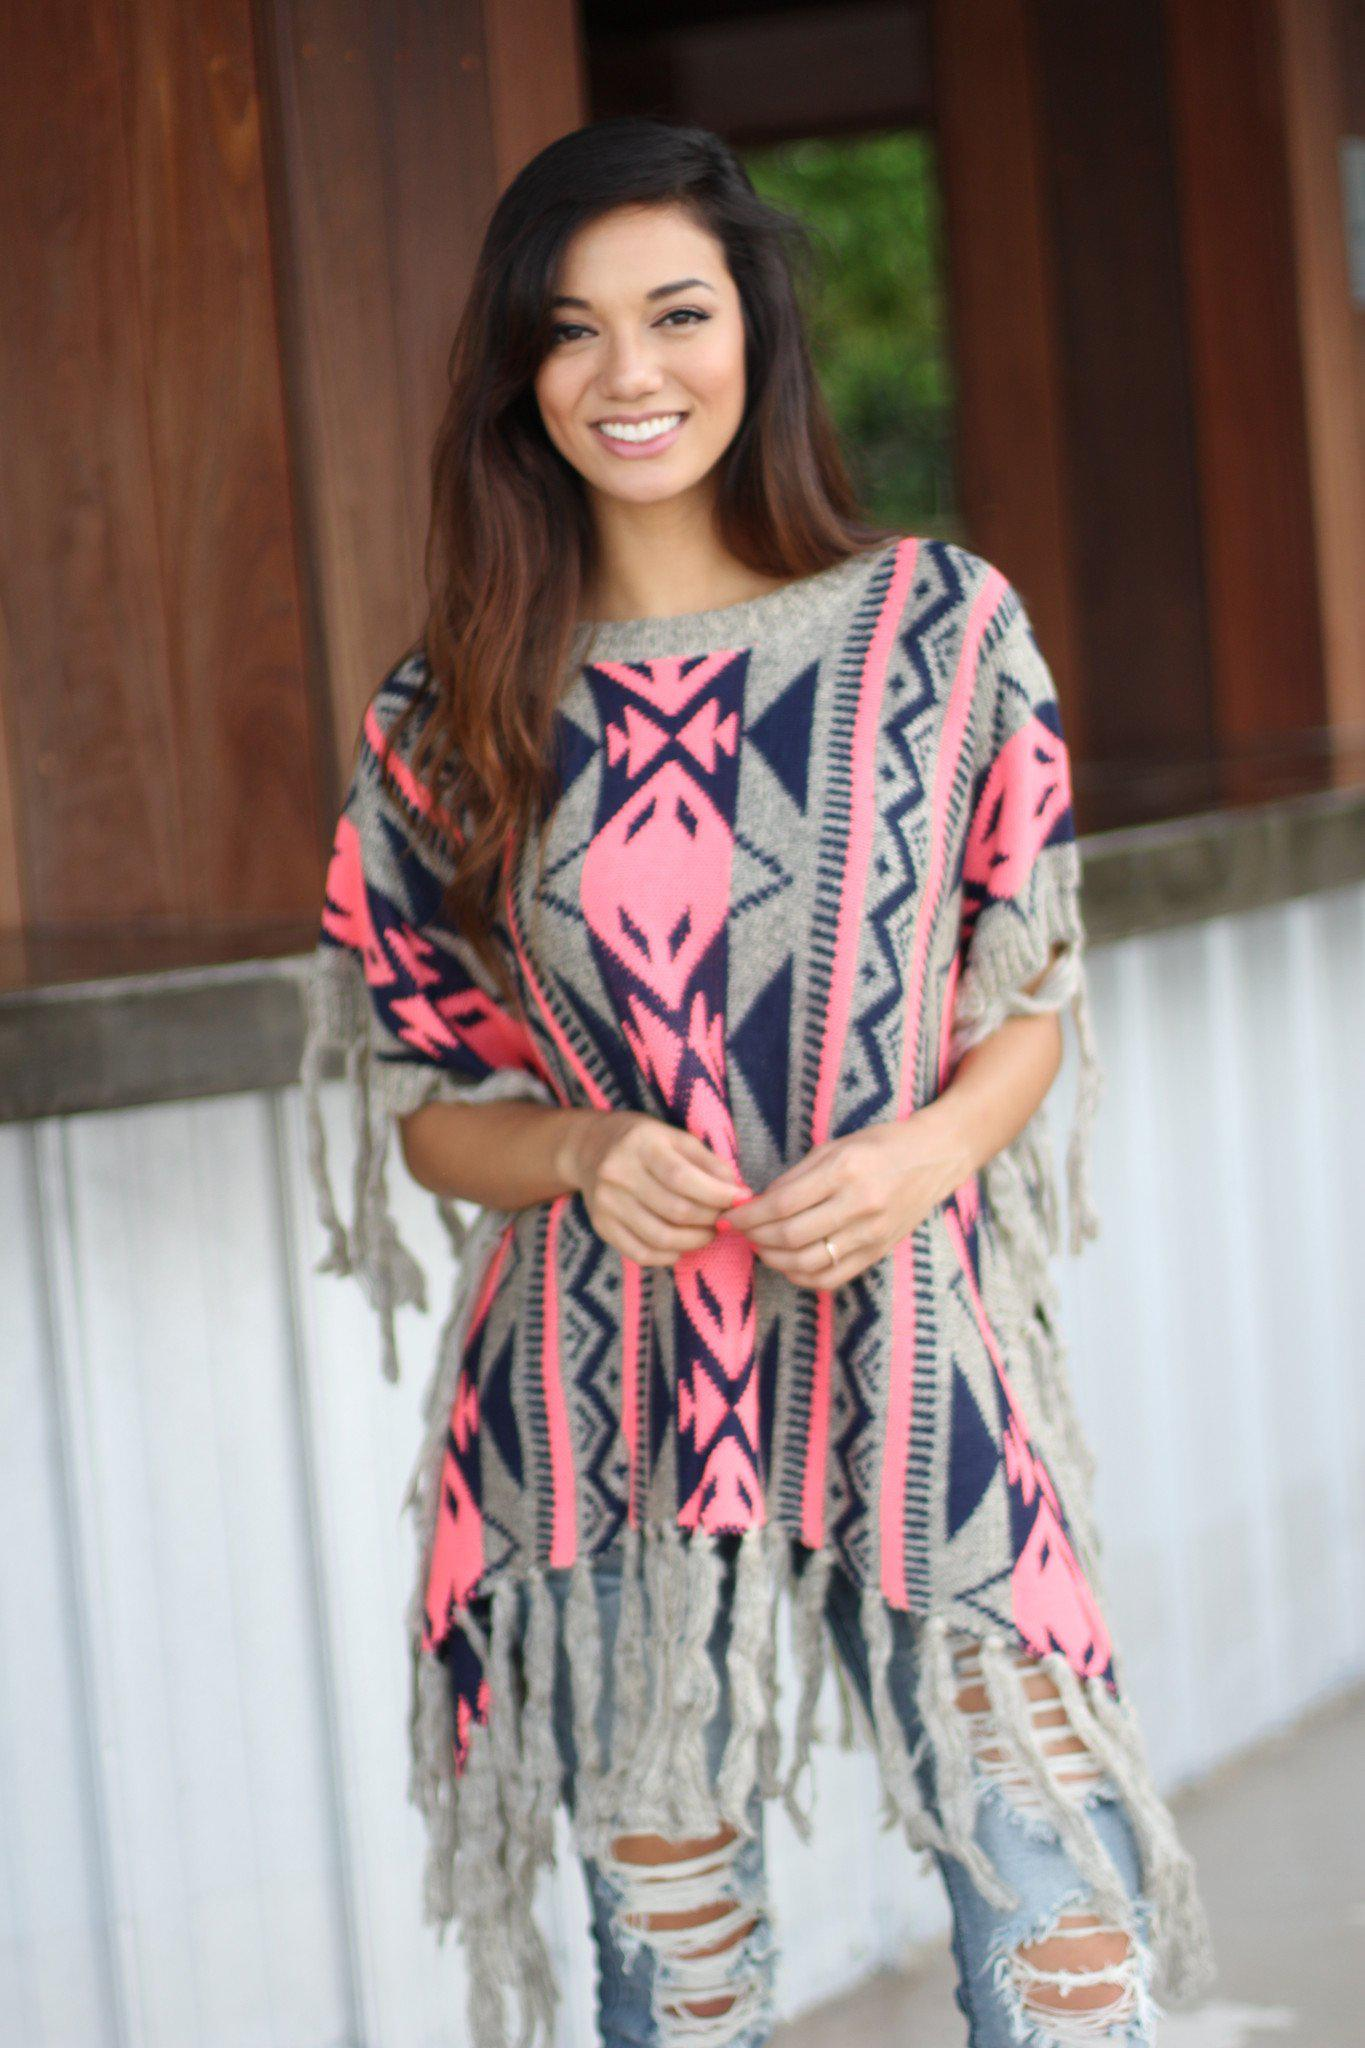 Neon Pink and Gray Poncho Sweater